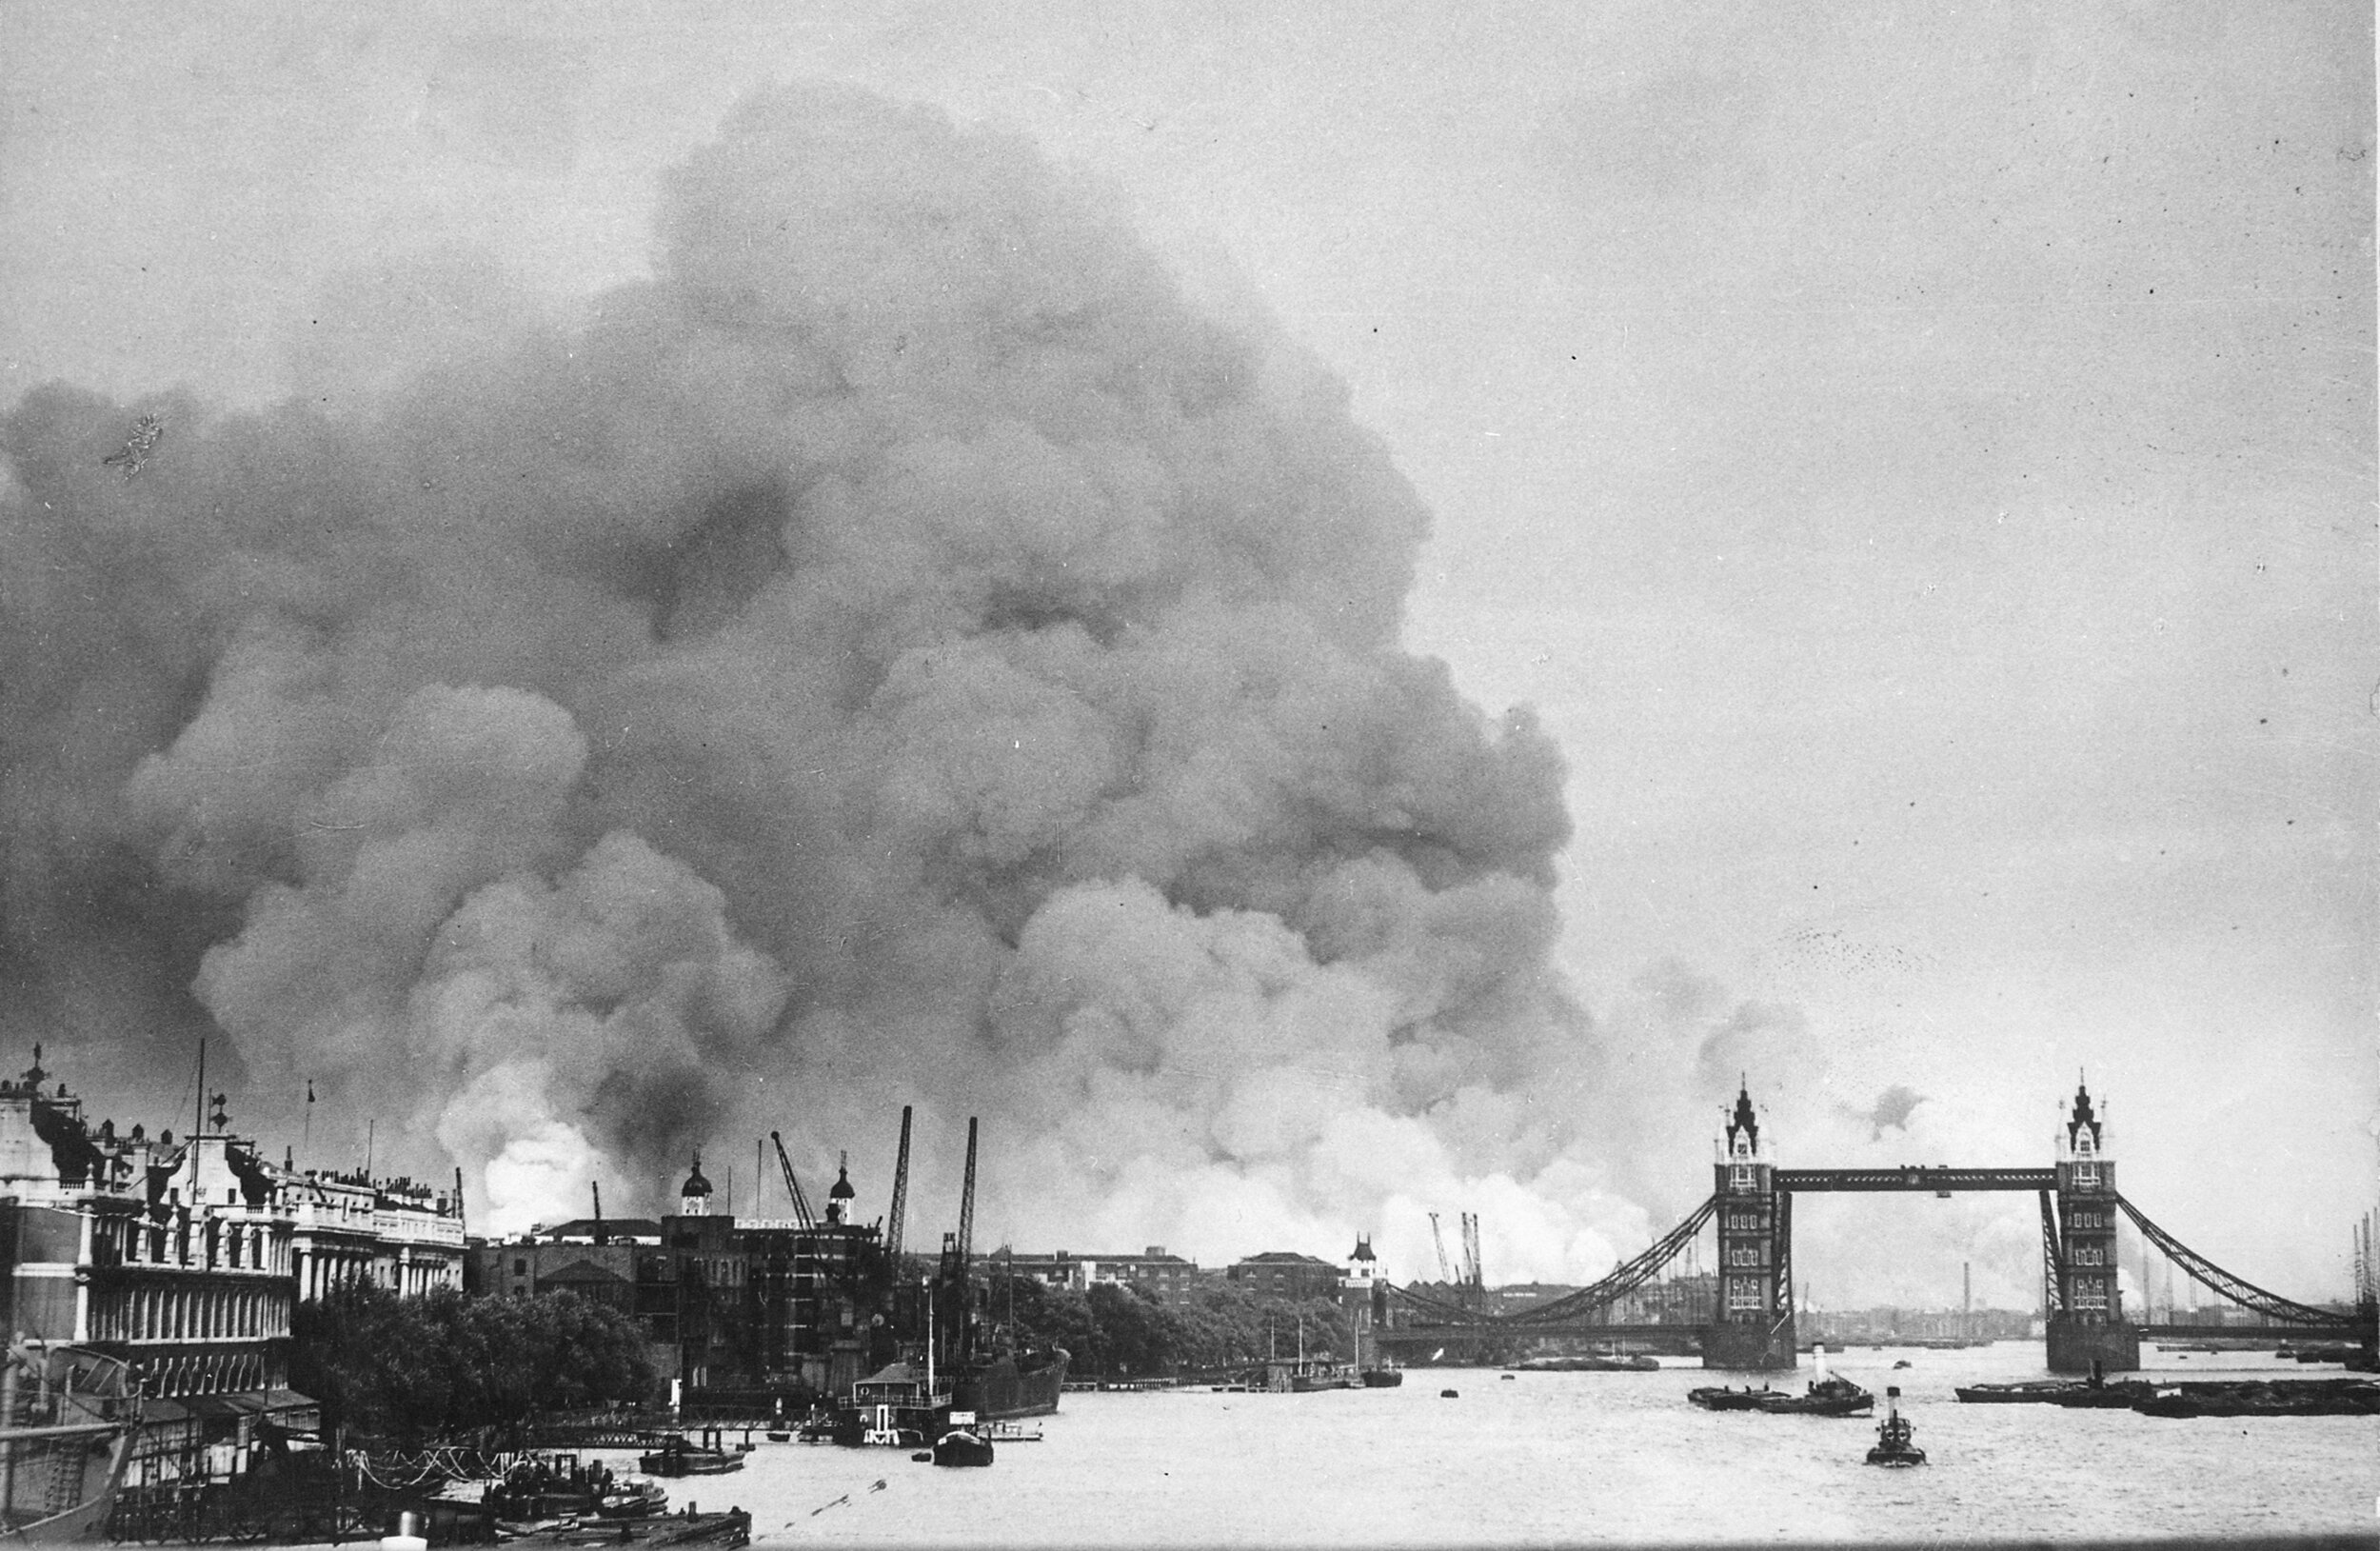 Smoke rising from fires in the London docks, following bombing on 7 September, 1940. By New York Times Paris Bureau Collection. Image courtesy of Wkimedia Commons.